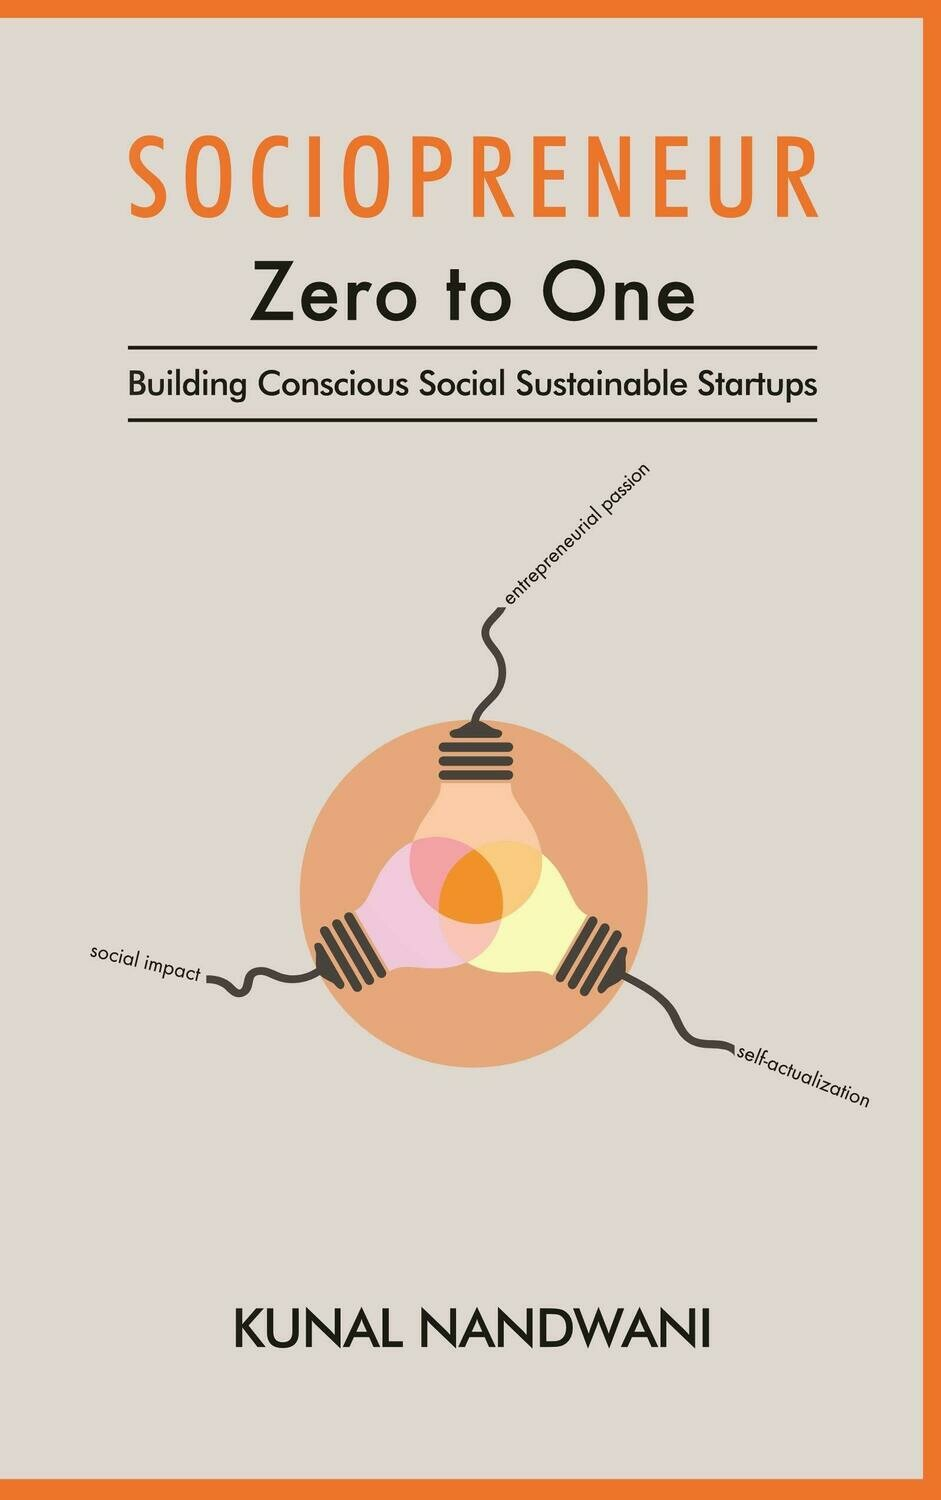 SOCIOPRENEUR Zero to One: Building Conscious Social Sustainable Startups